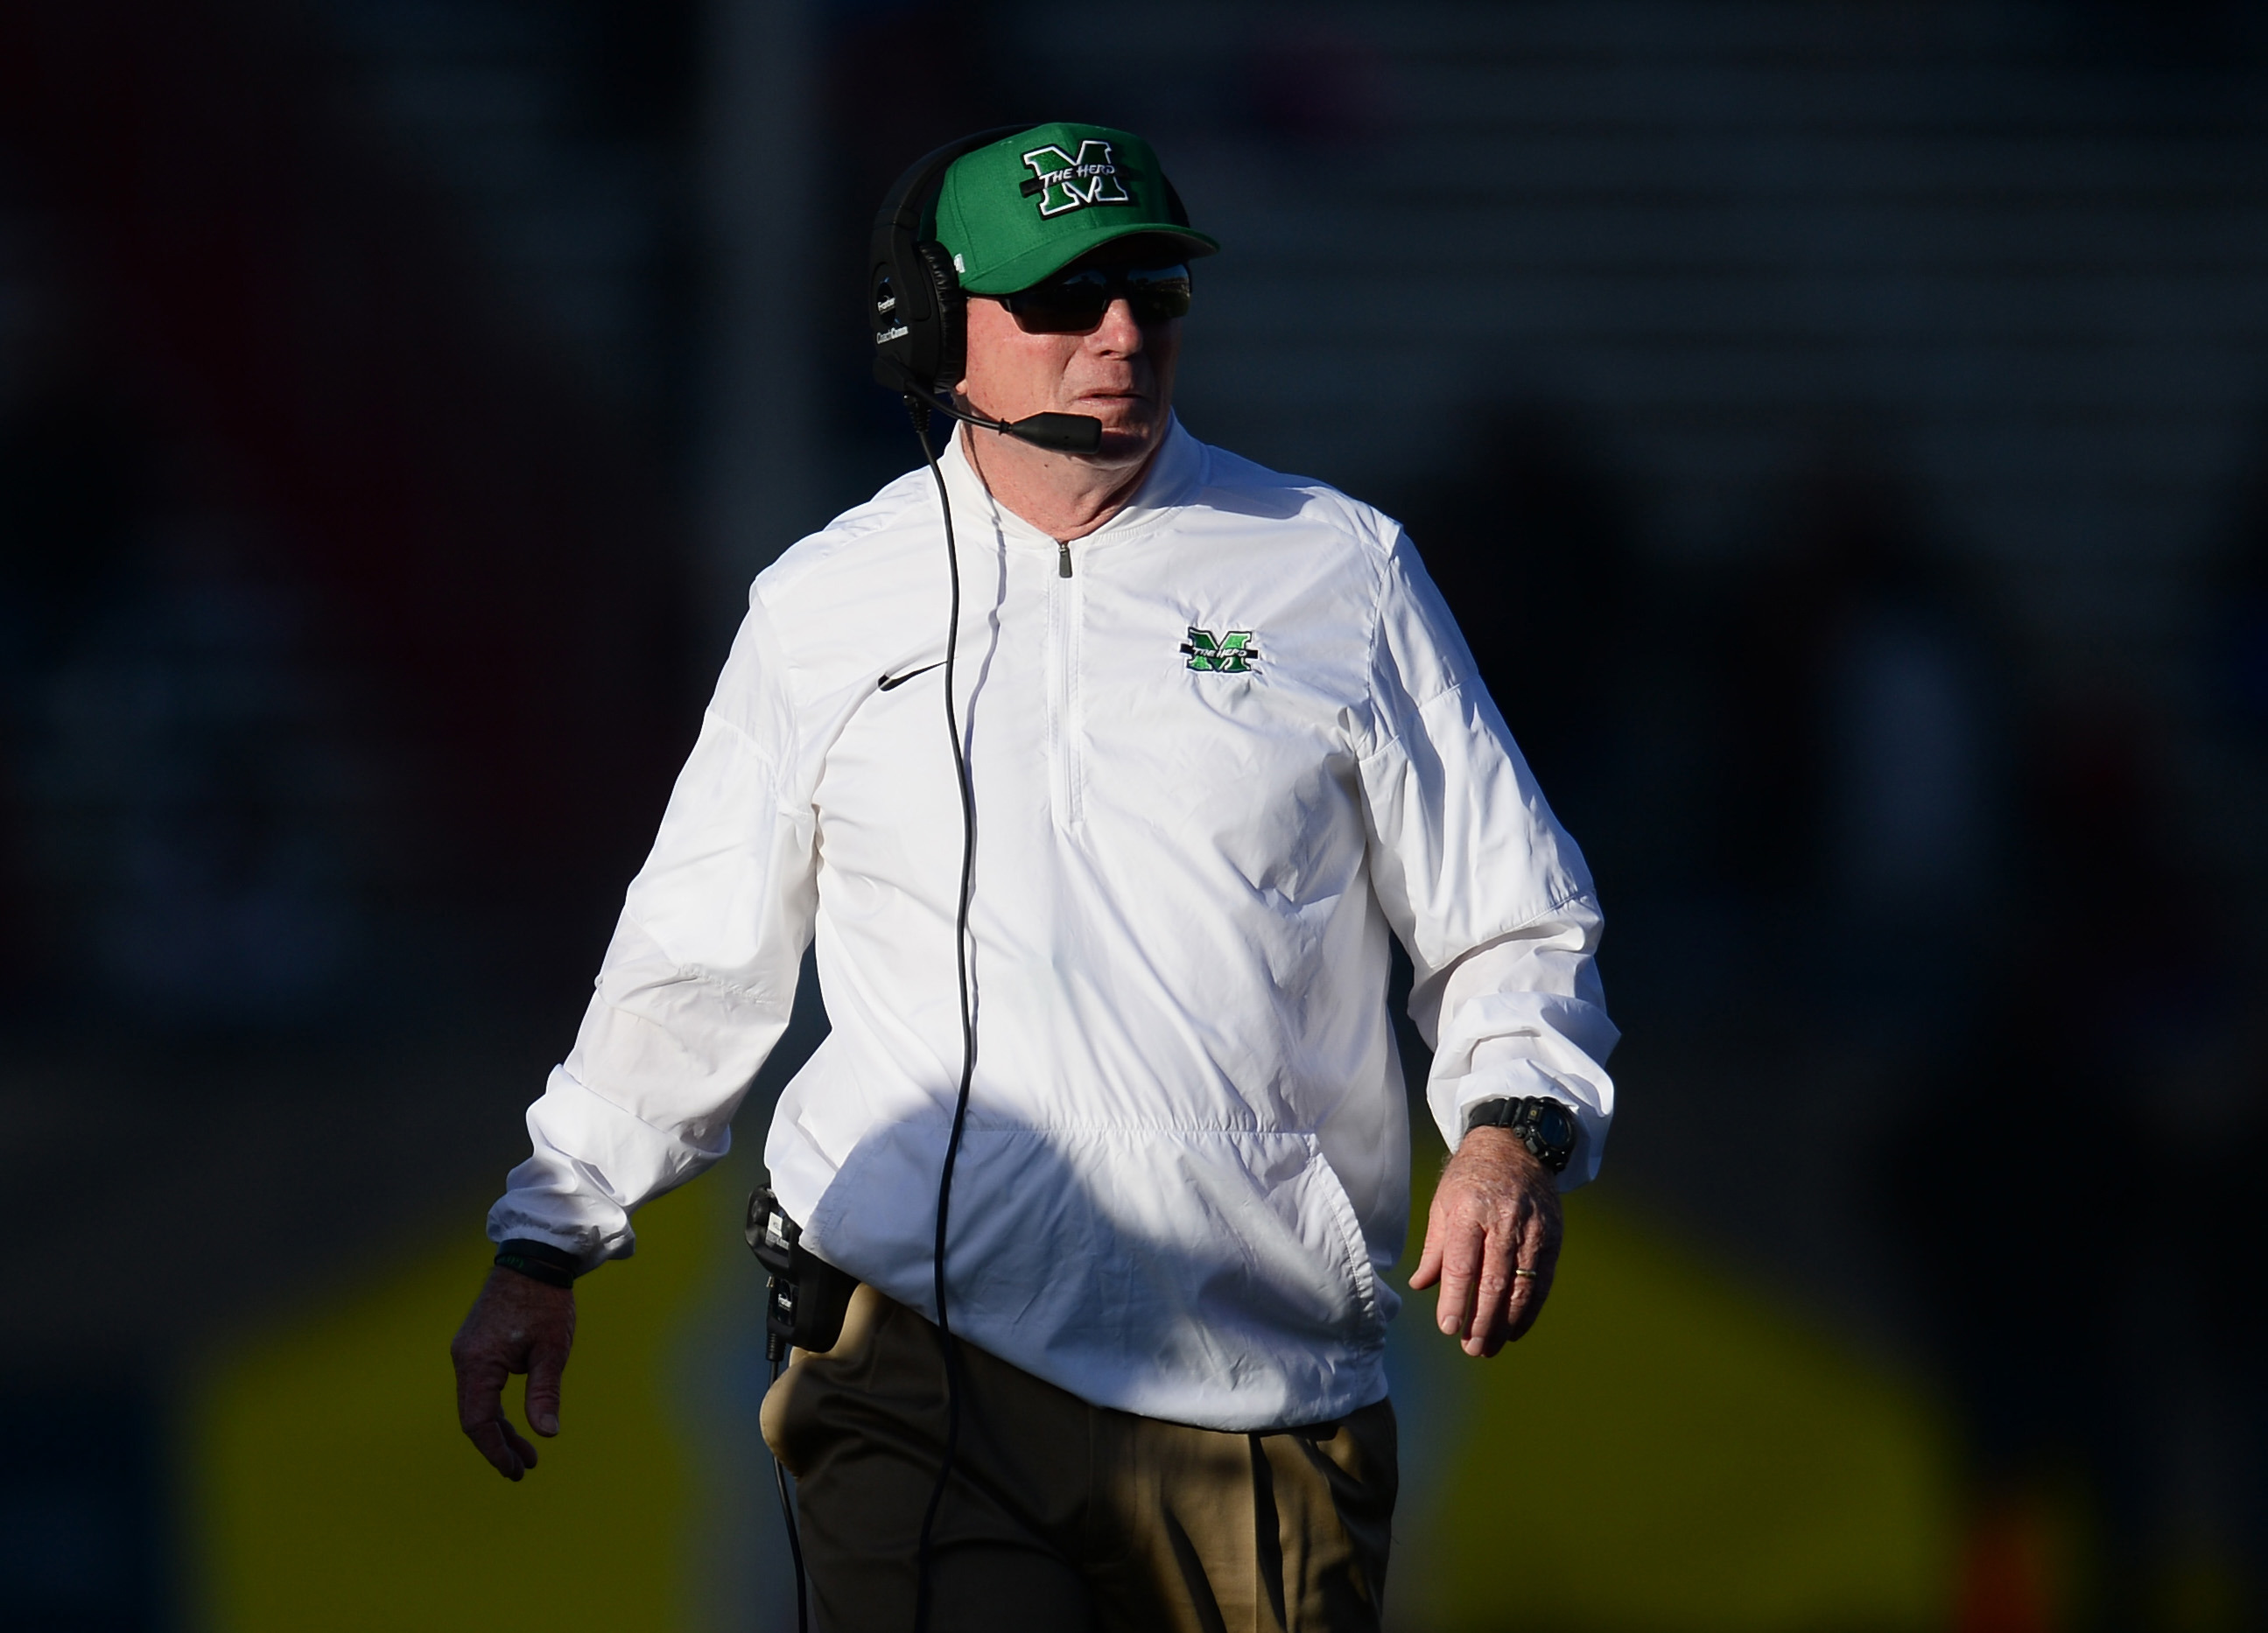 Dec 16, 2017; Albuquerque, NM, USA; Marshall Thundering Herd head coach Doc Holliday looks on against the Colorado State Rams during the first half in the 2017 New Mexico Bowl at Dreamstyle Stadium. Mandatory Credit: Joe Camporeale-USA TODAY Sport